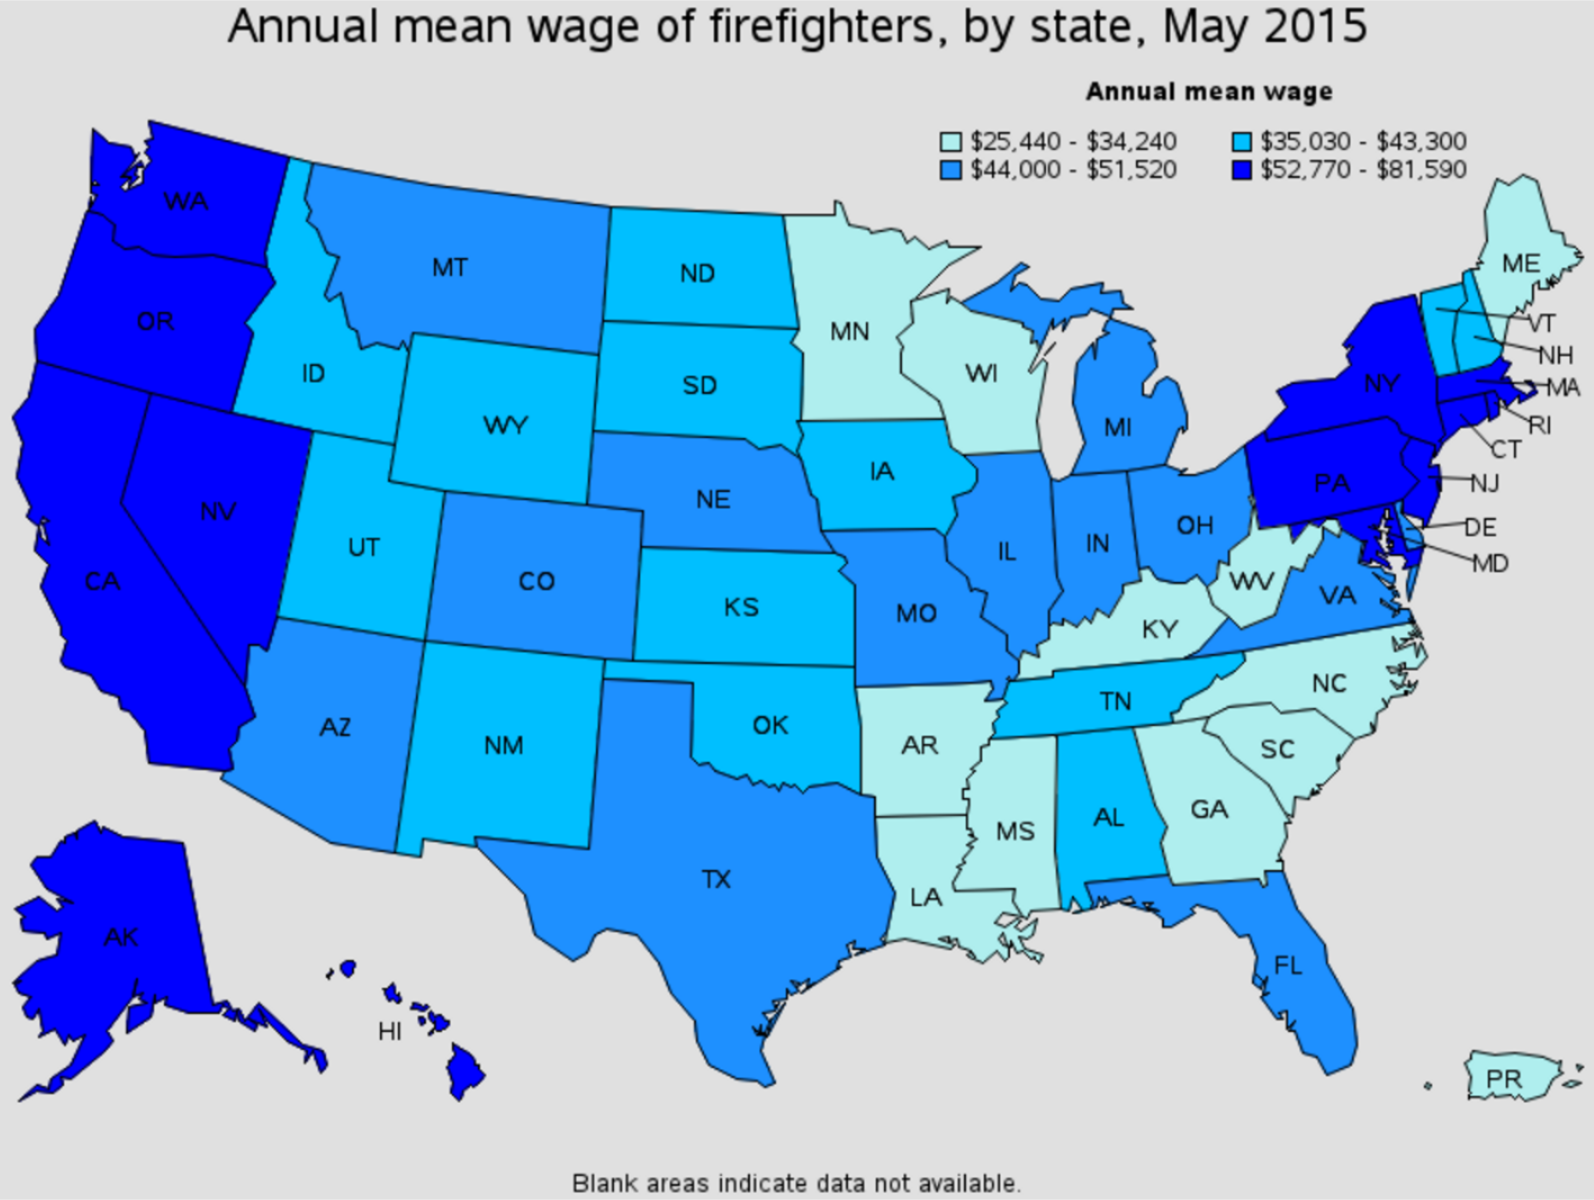 firefighter average salary by state Bunch Oklahoma